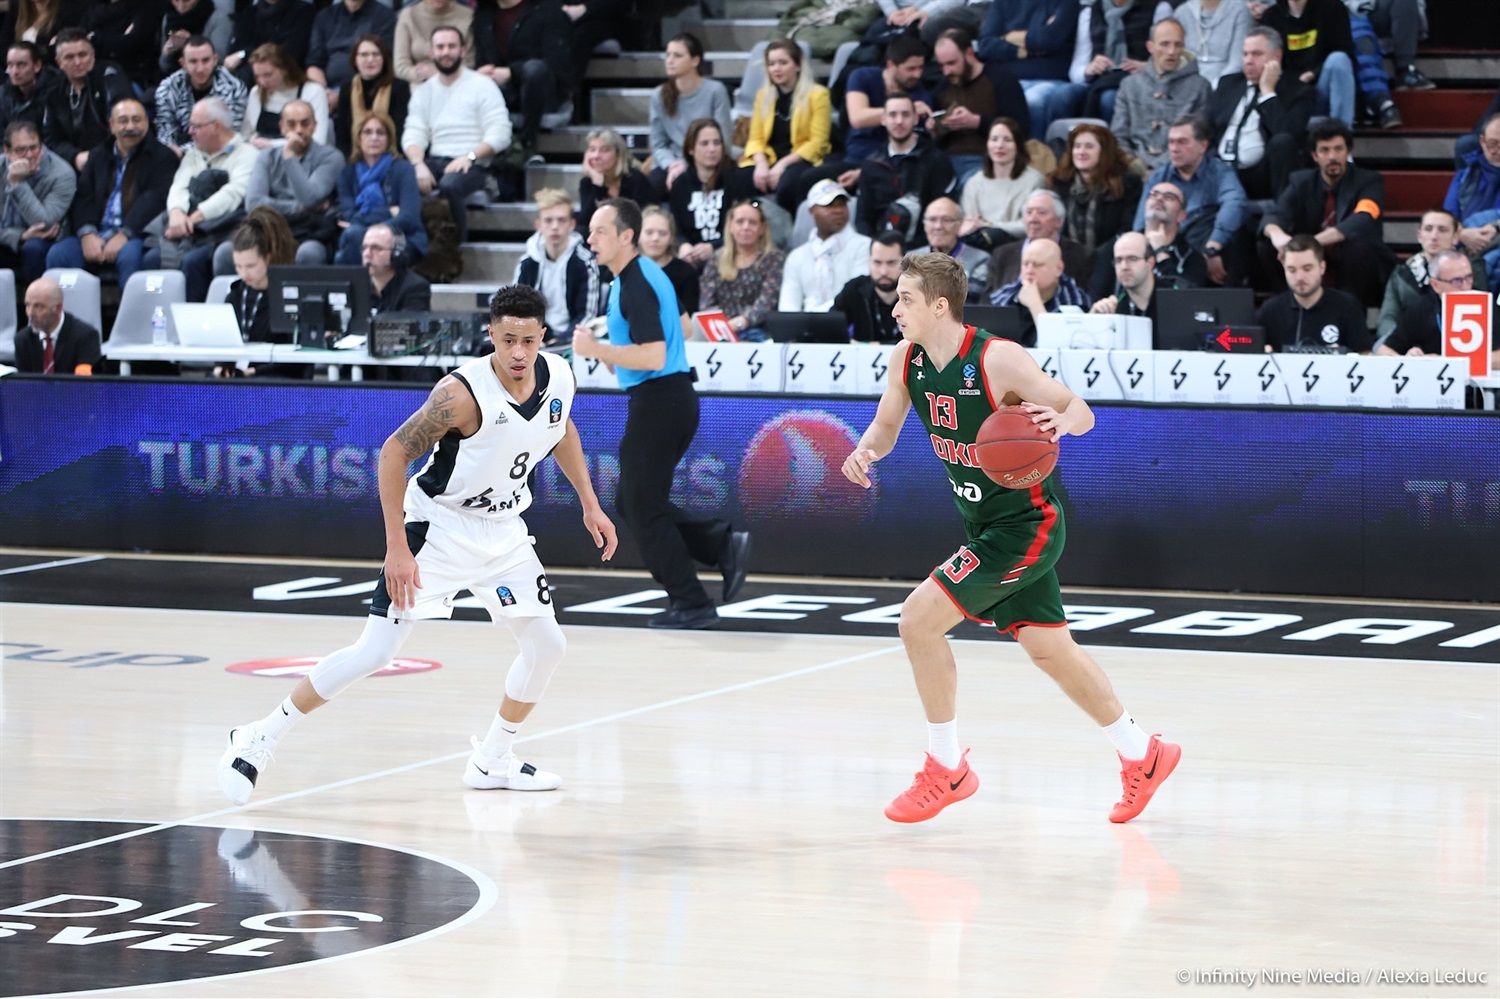 Dmitry Khvostov - Lokomotiv Kuban Krasnodar (photo Infinity Nine Media - Alexia Leduc) - EC18